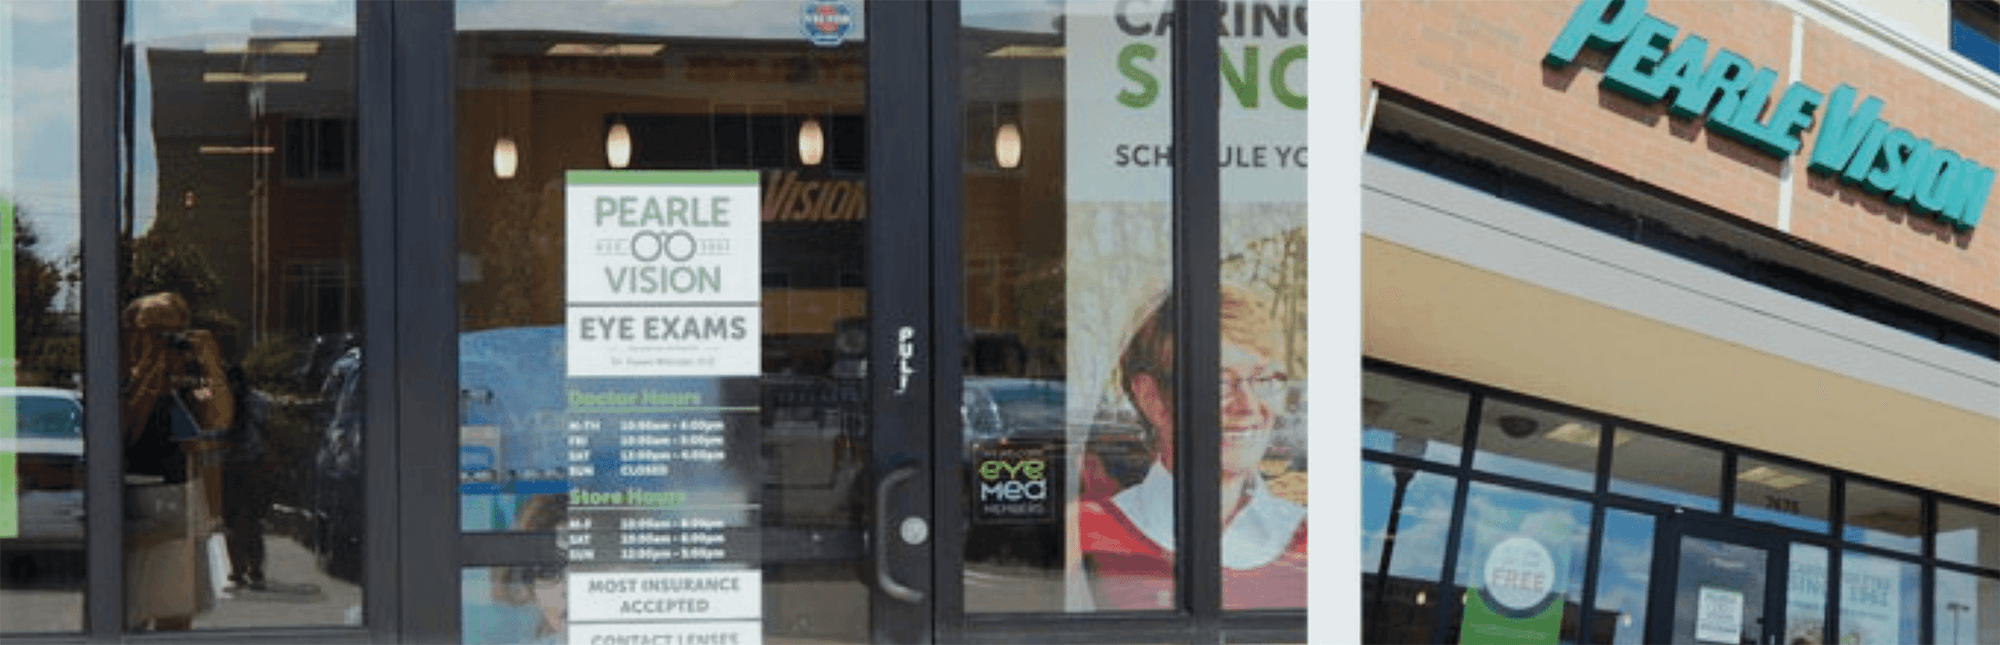 sign on front door of pearle vision centers